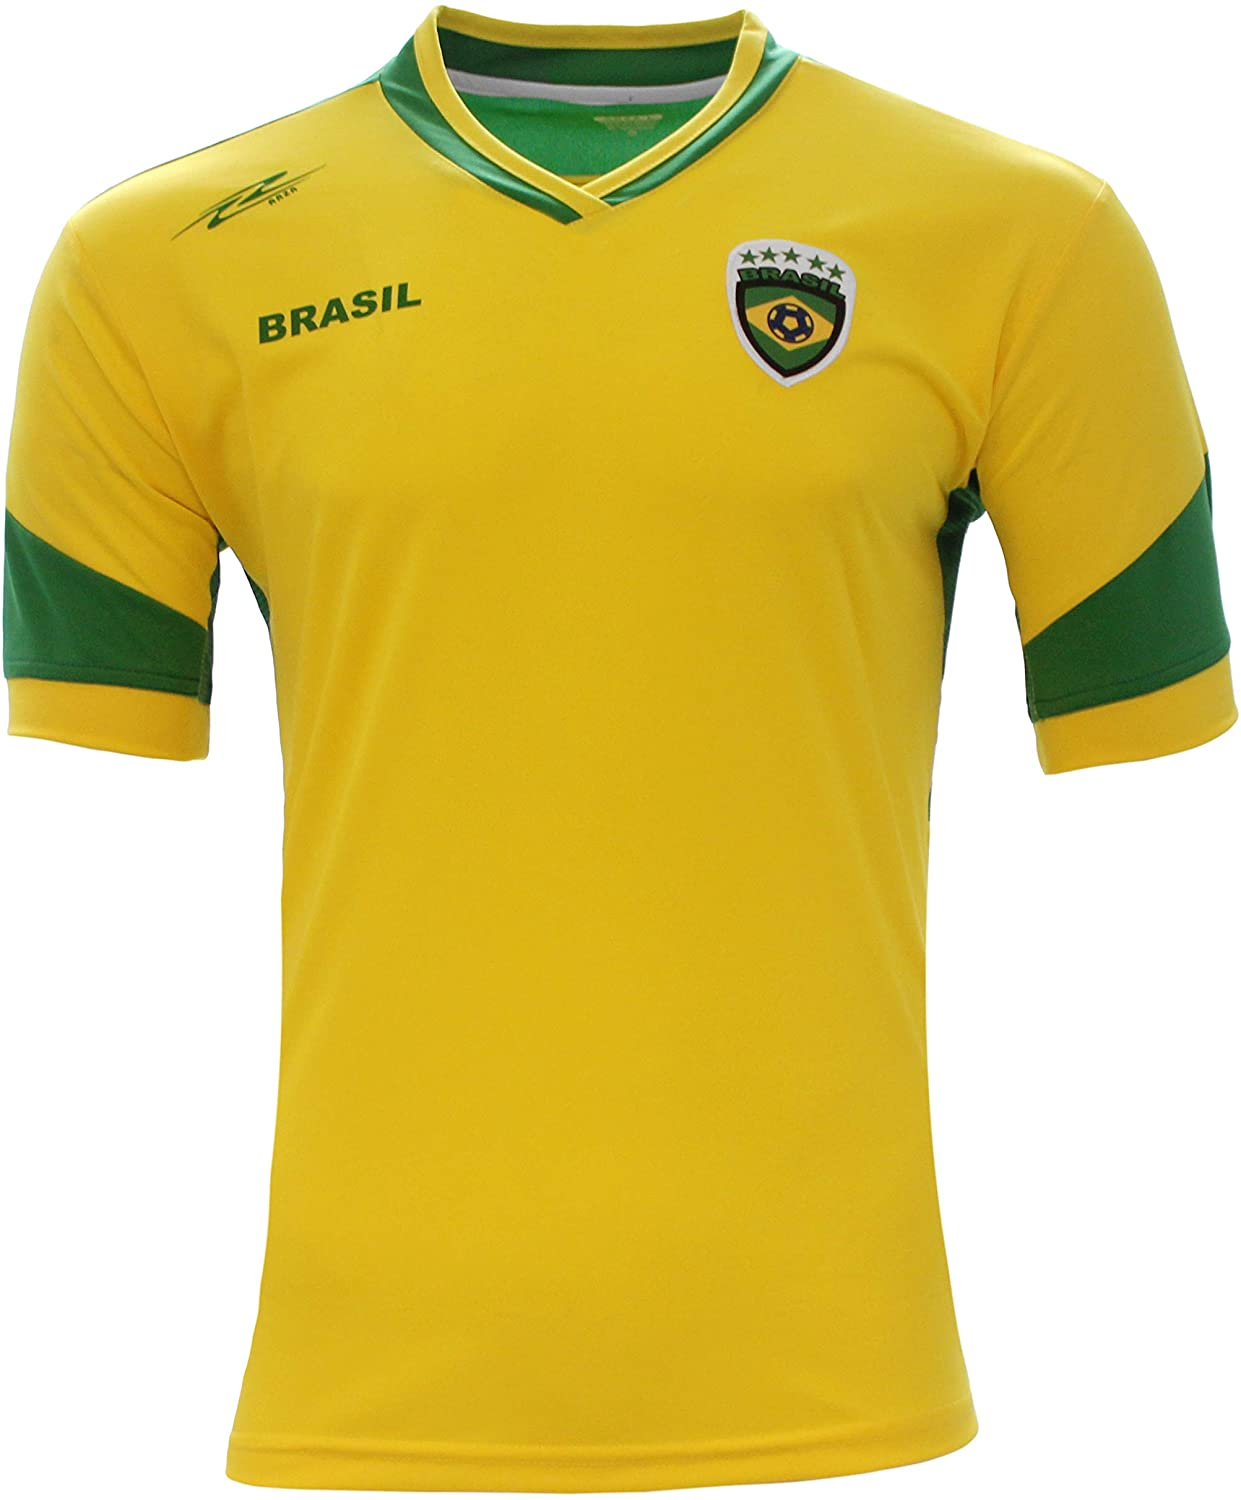 Brazil New Arza Soccer Jersey Yellow/Green 100% Polyester